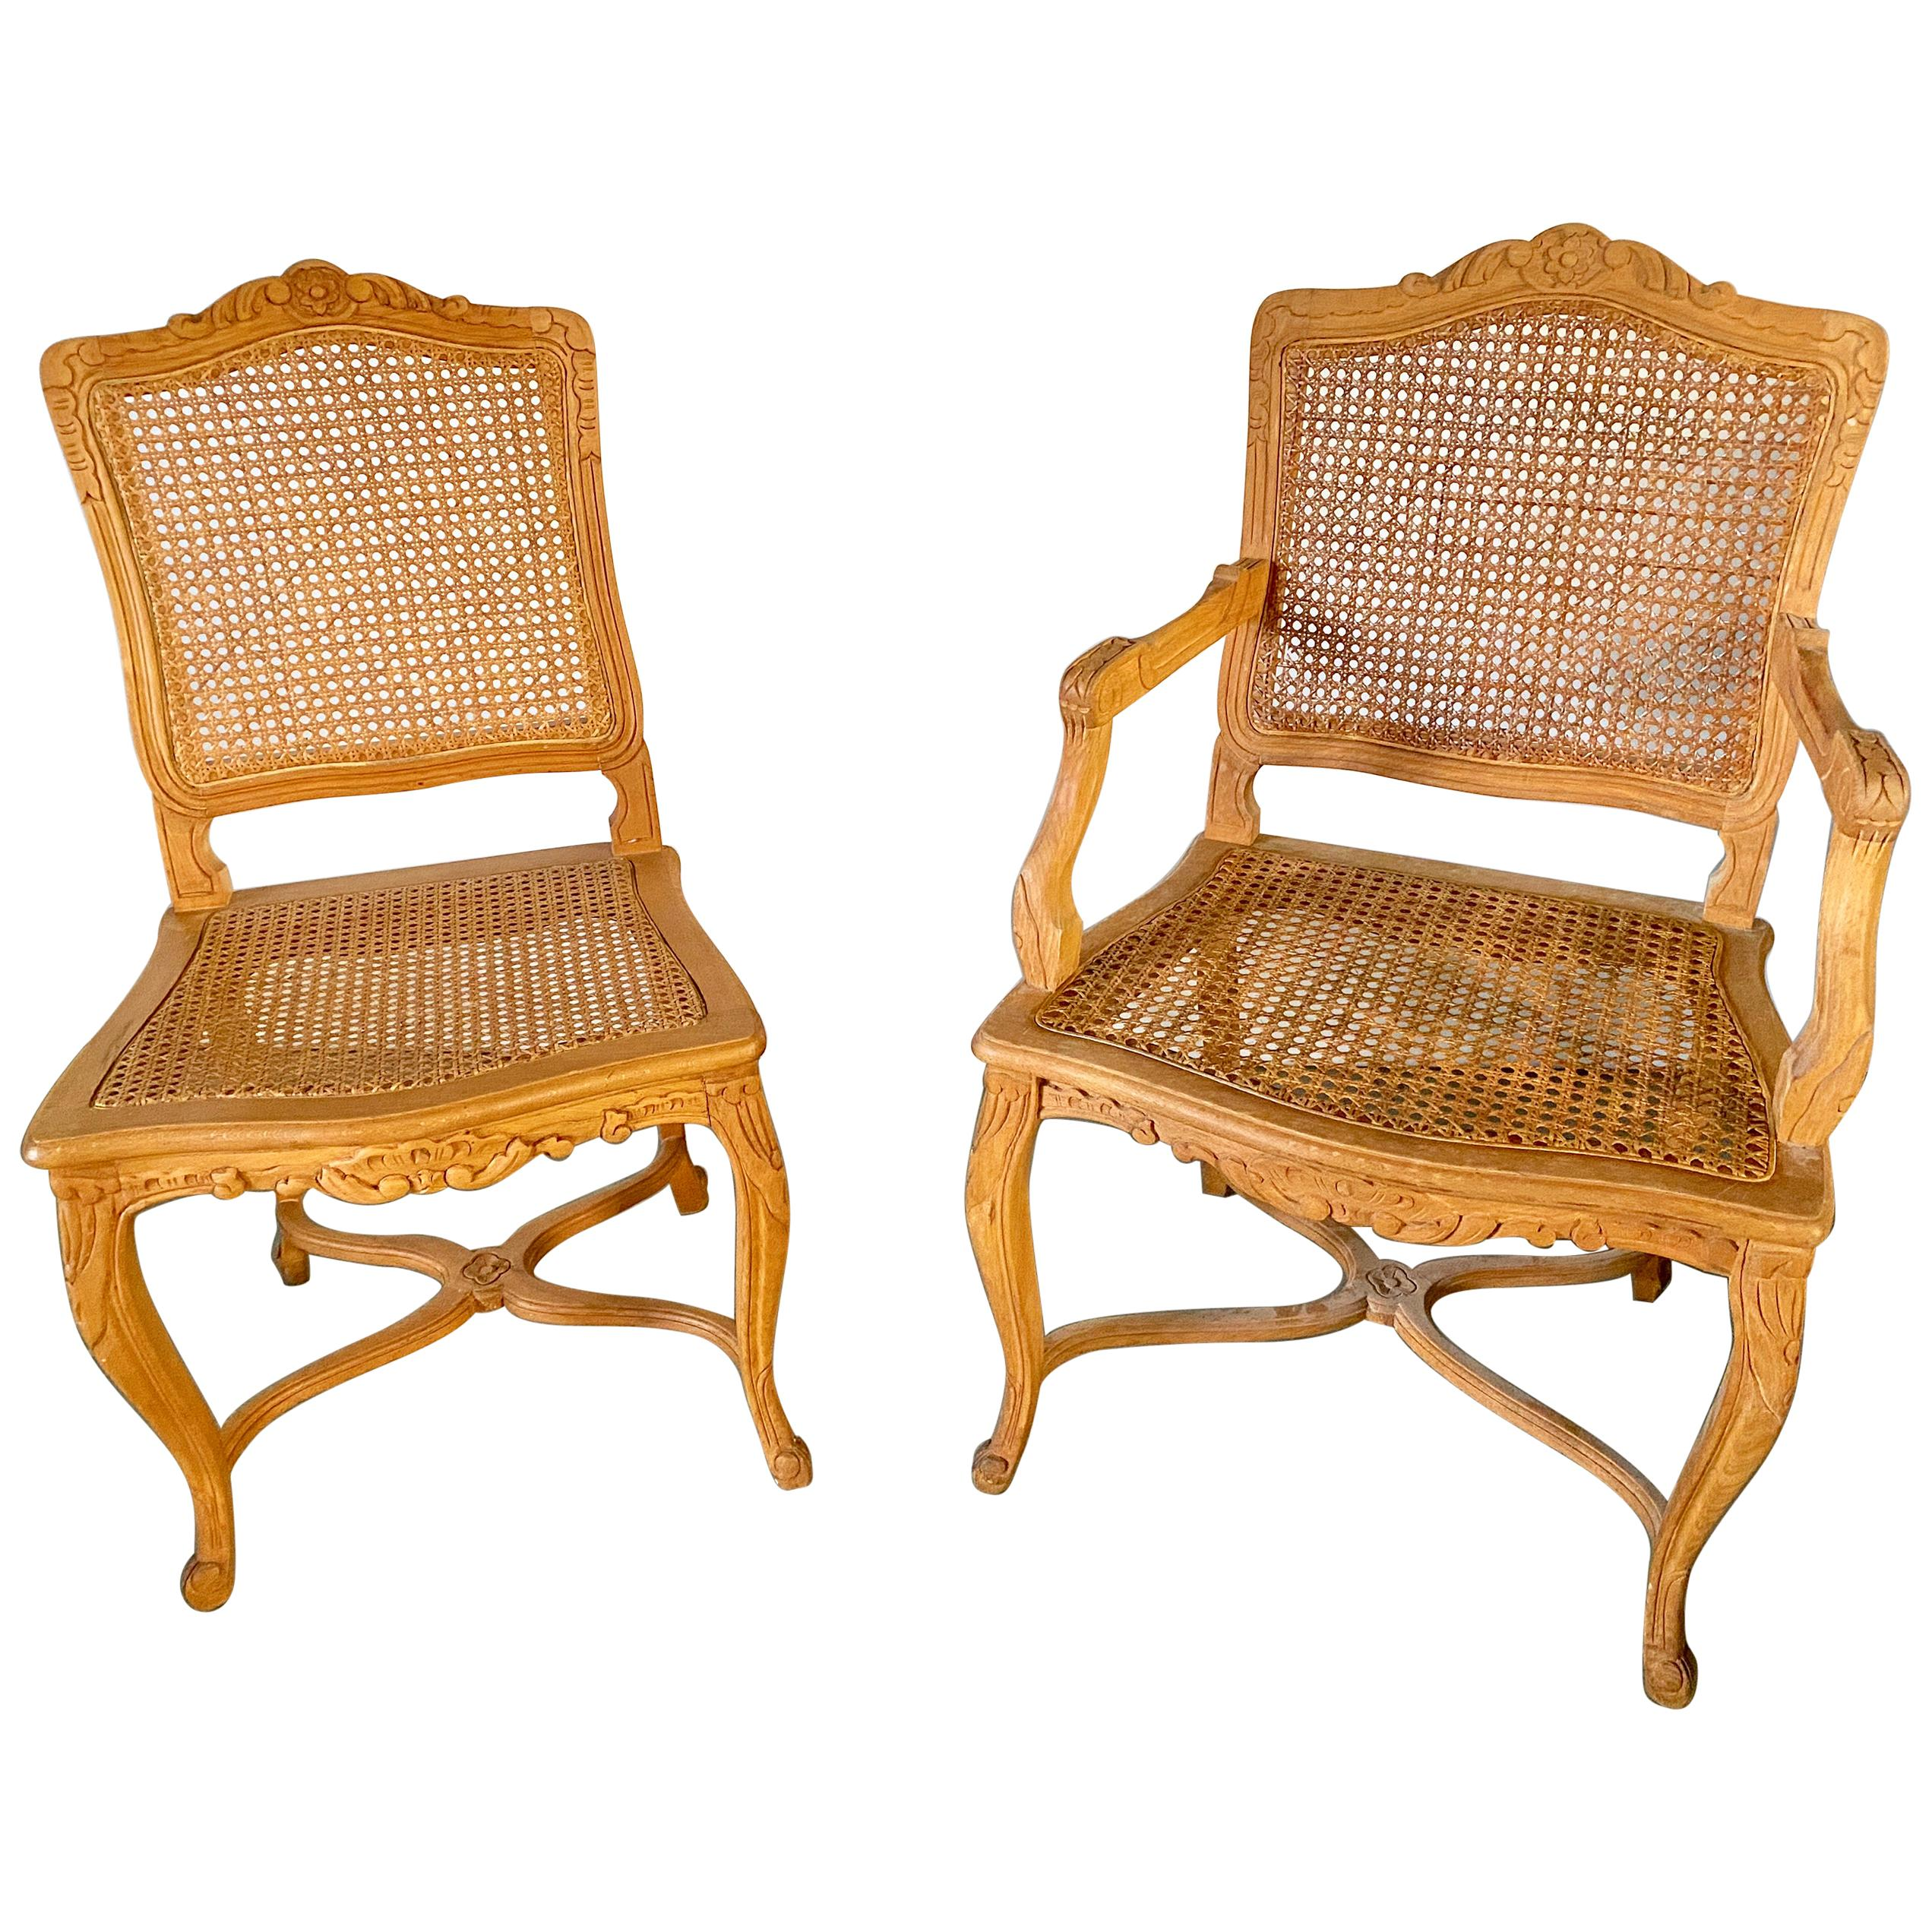 Two Louis XV Provincial Country Style Caned Seat Dining Chairs